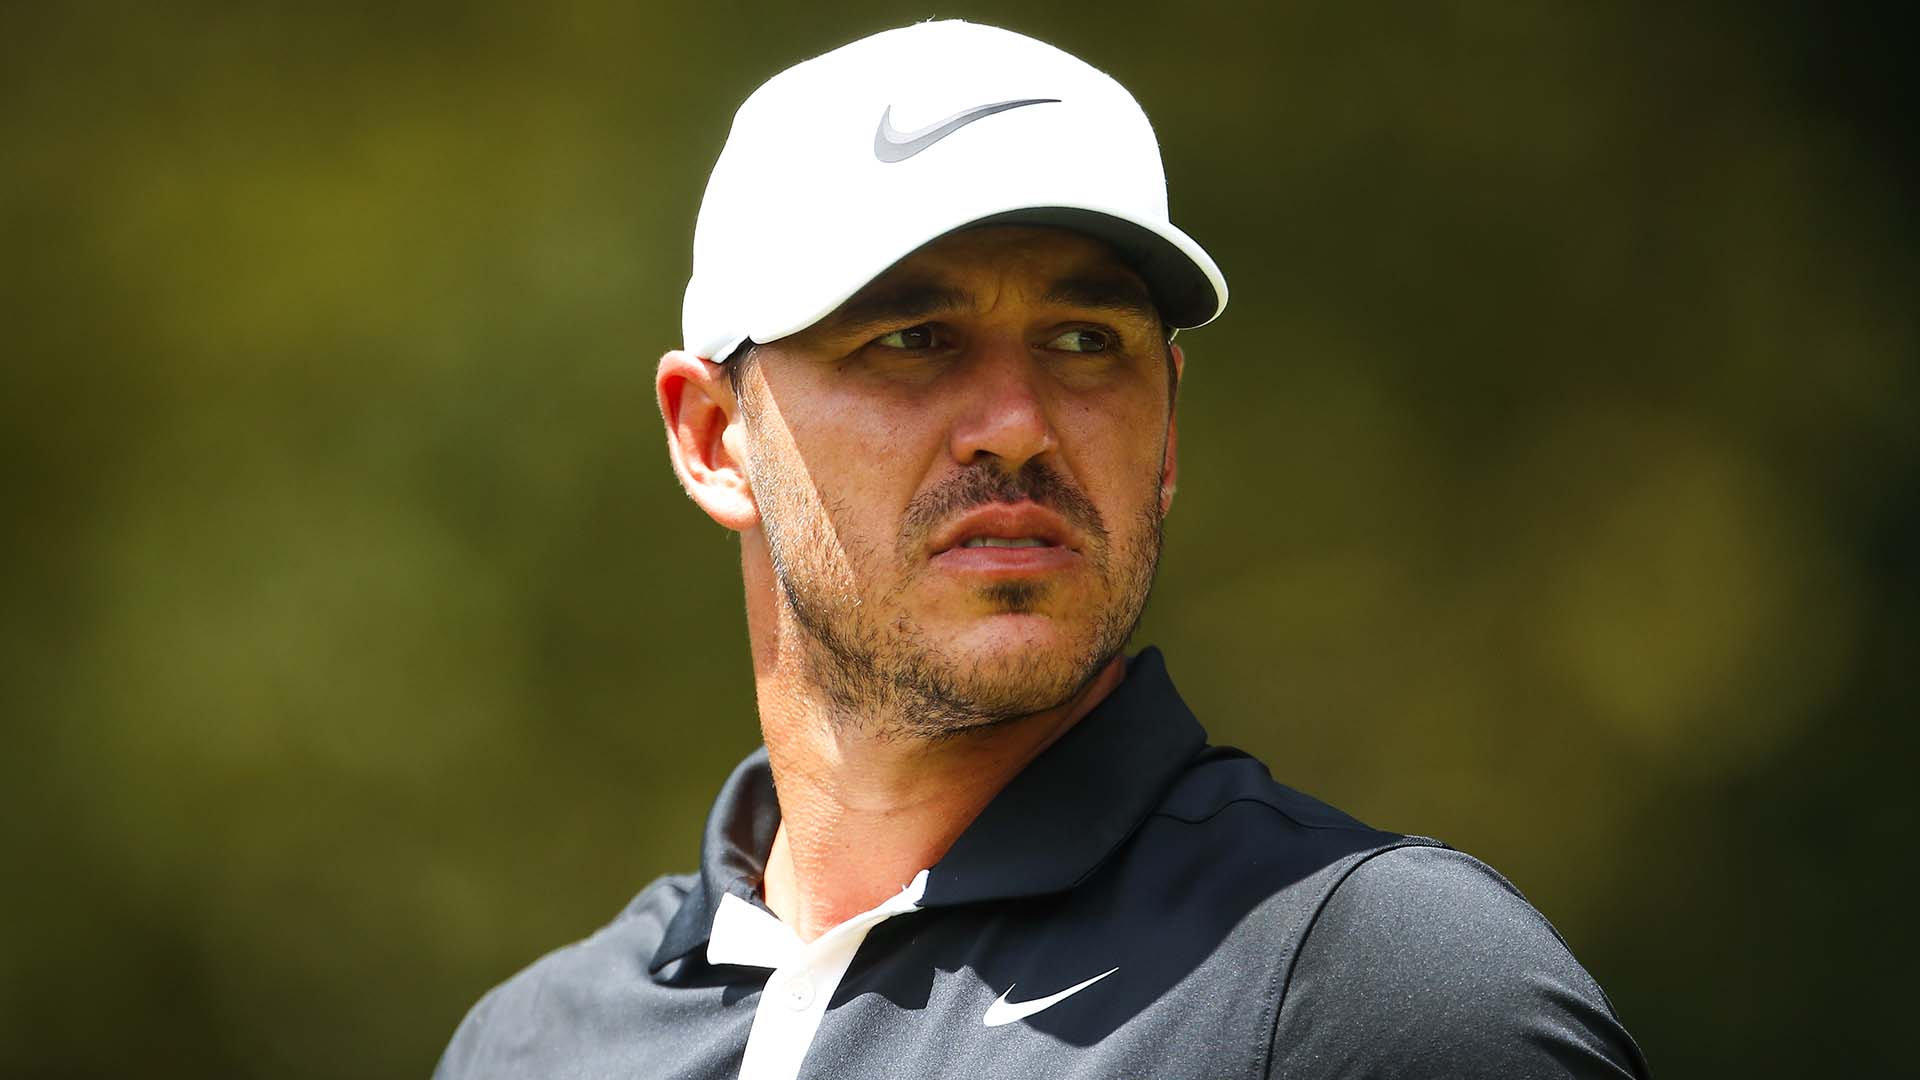 Brooks Koepka bares all, especially confidence, as he chases FedExCup glory